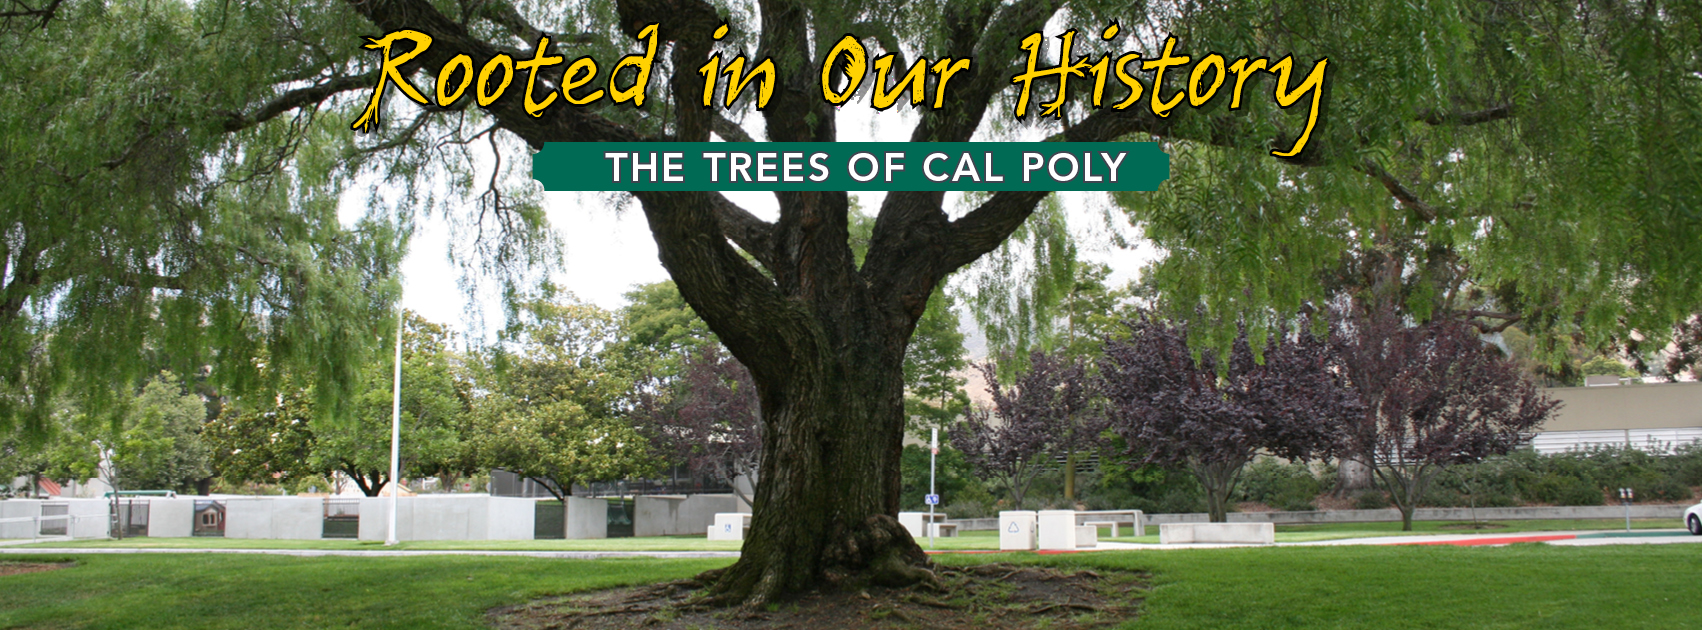 Rooted in Our History The Trees of Cal Poly Exhibit on the 4th floor